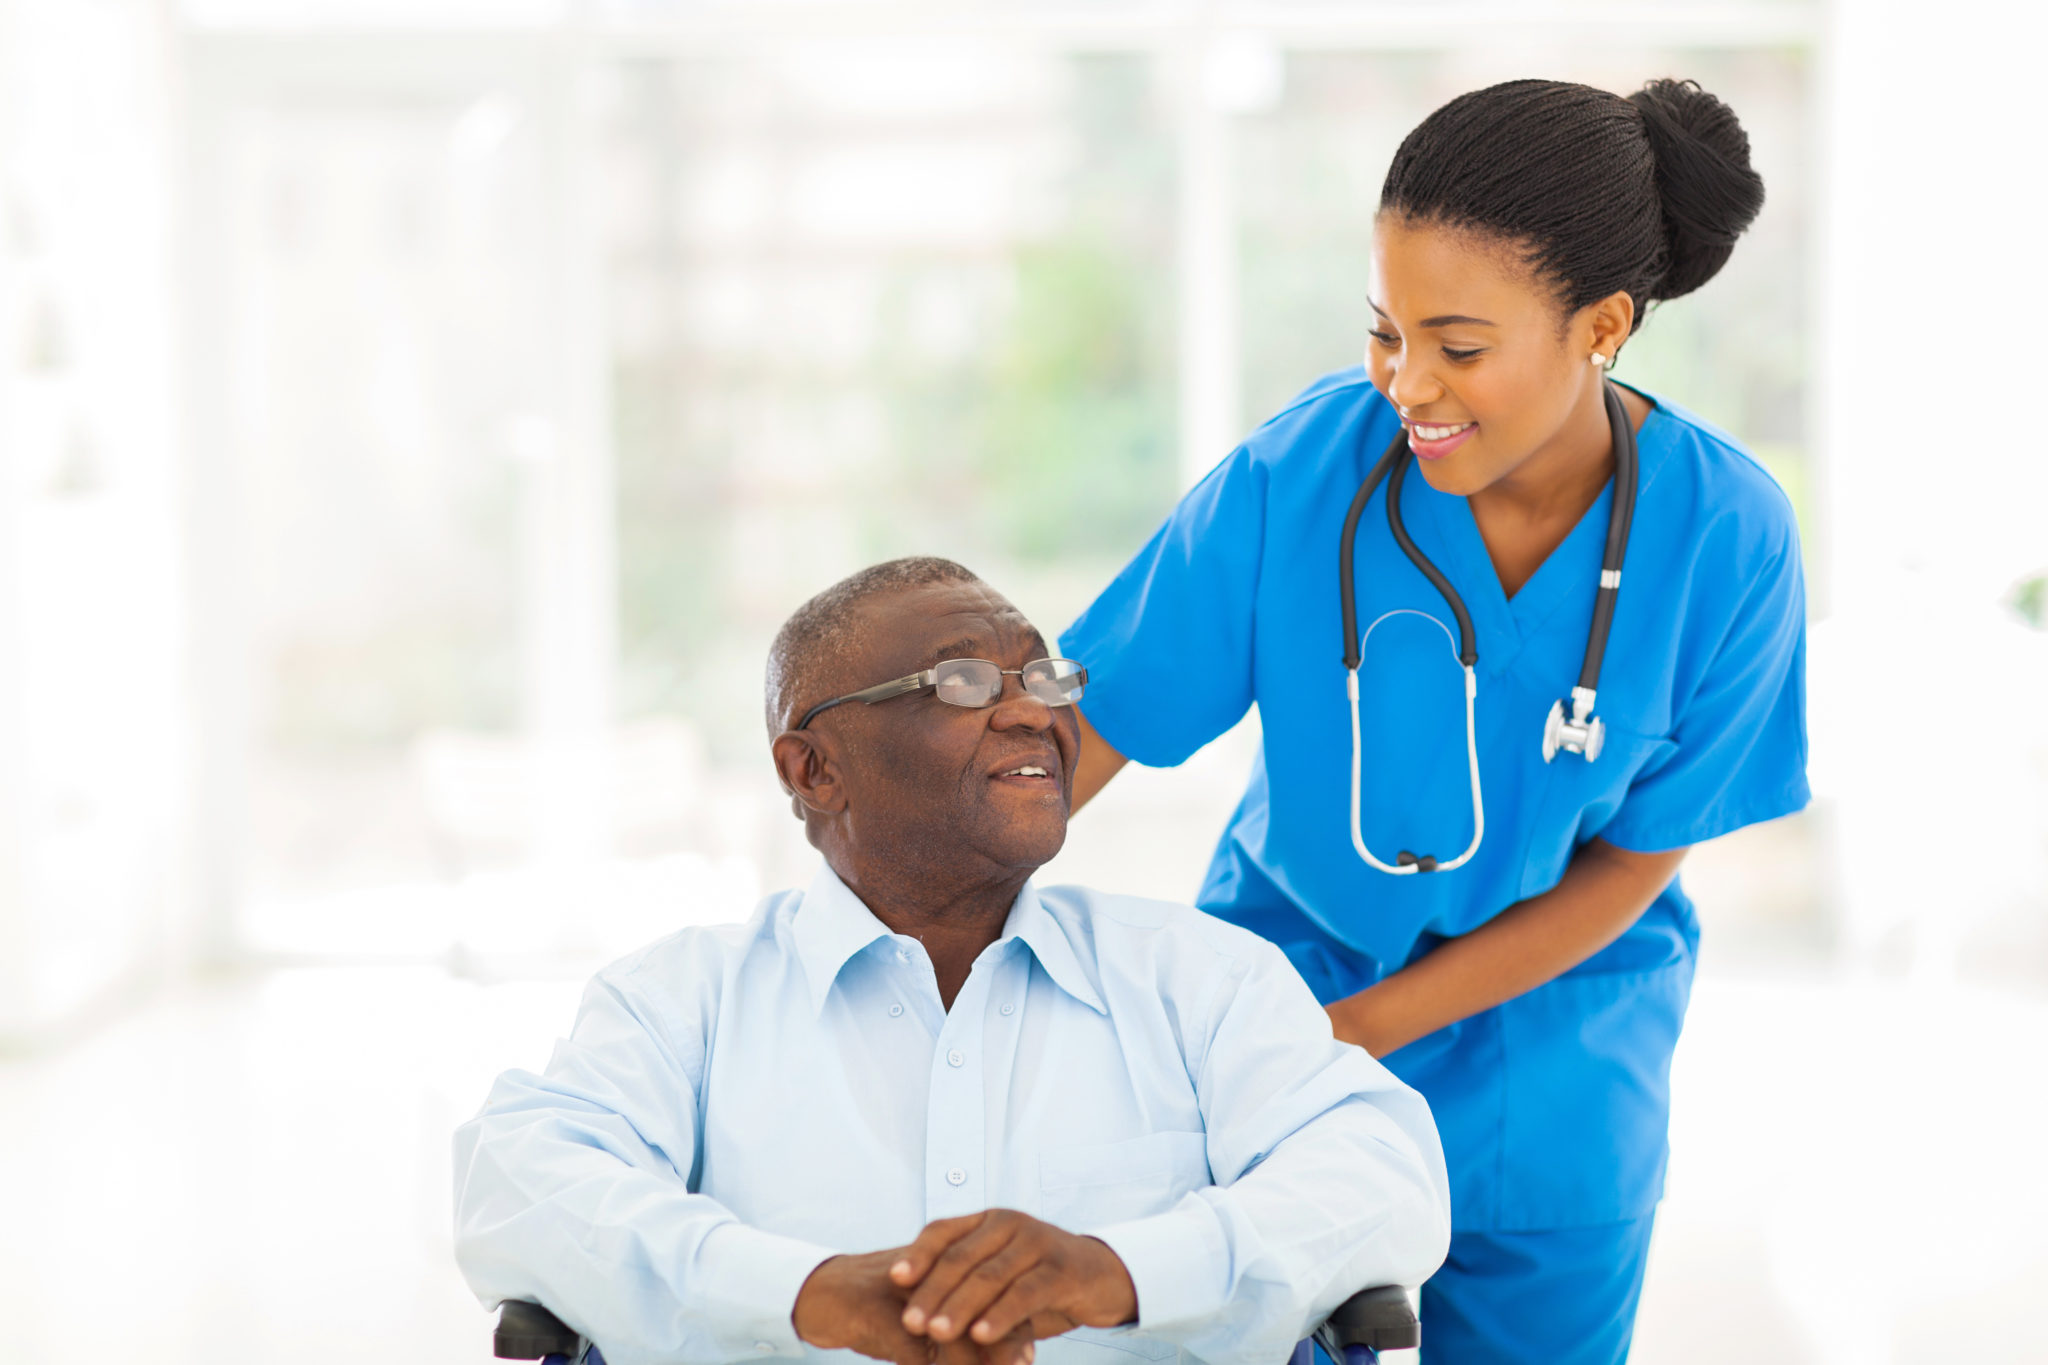 How to Become a Certified Nursing Assistant